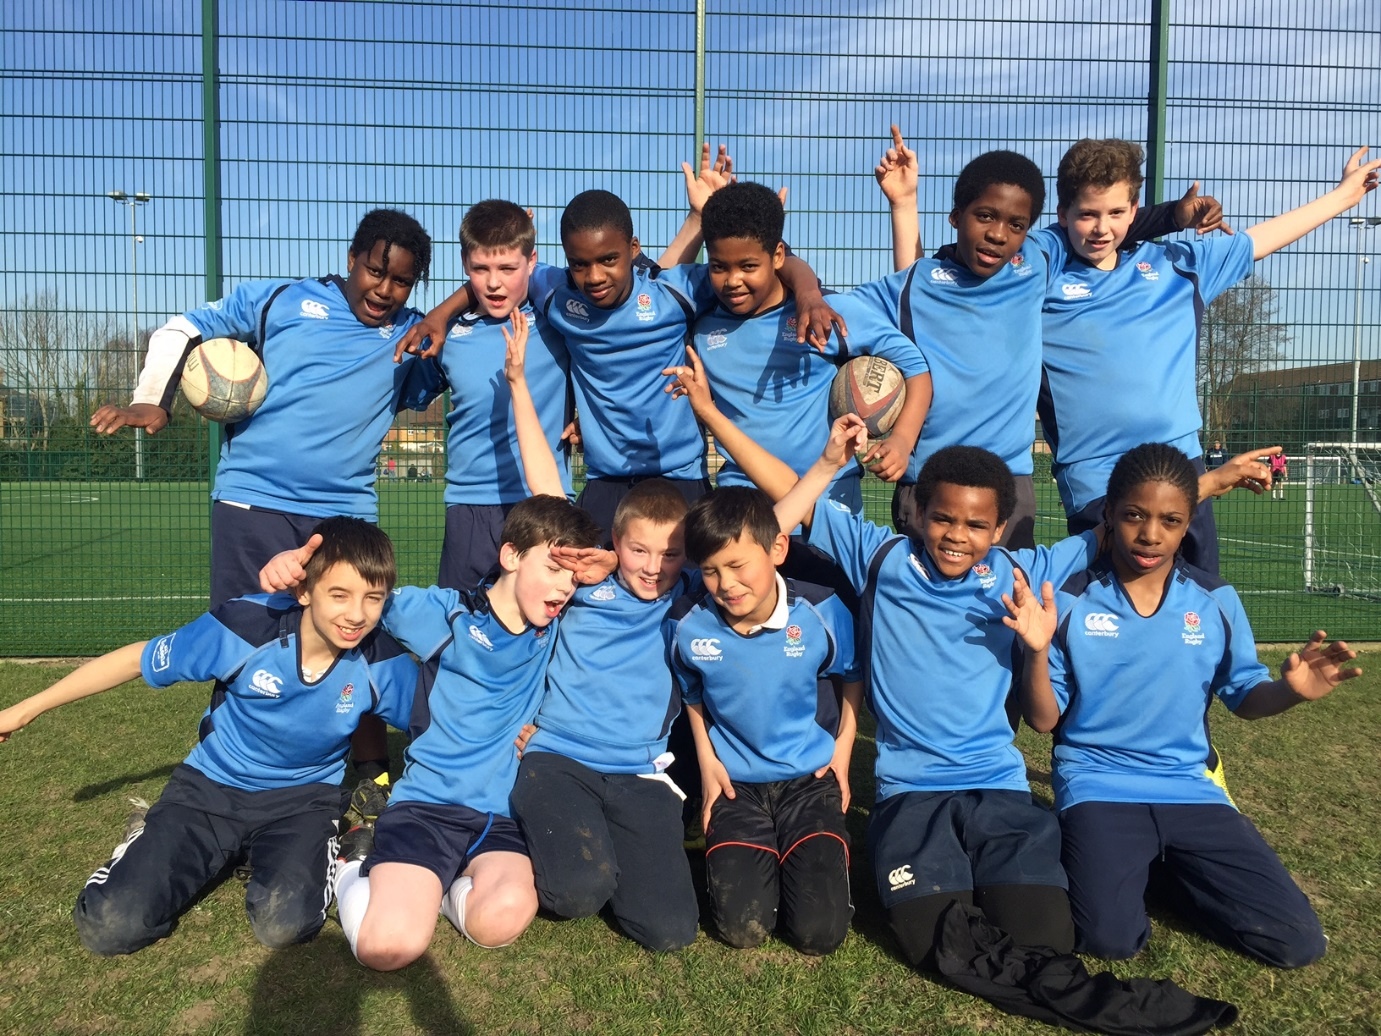 Quest Academy School In South Croydon Year 7 Rugby